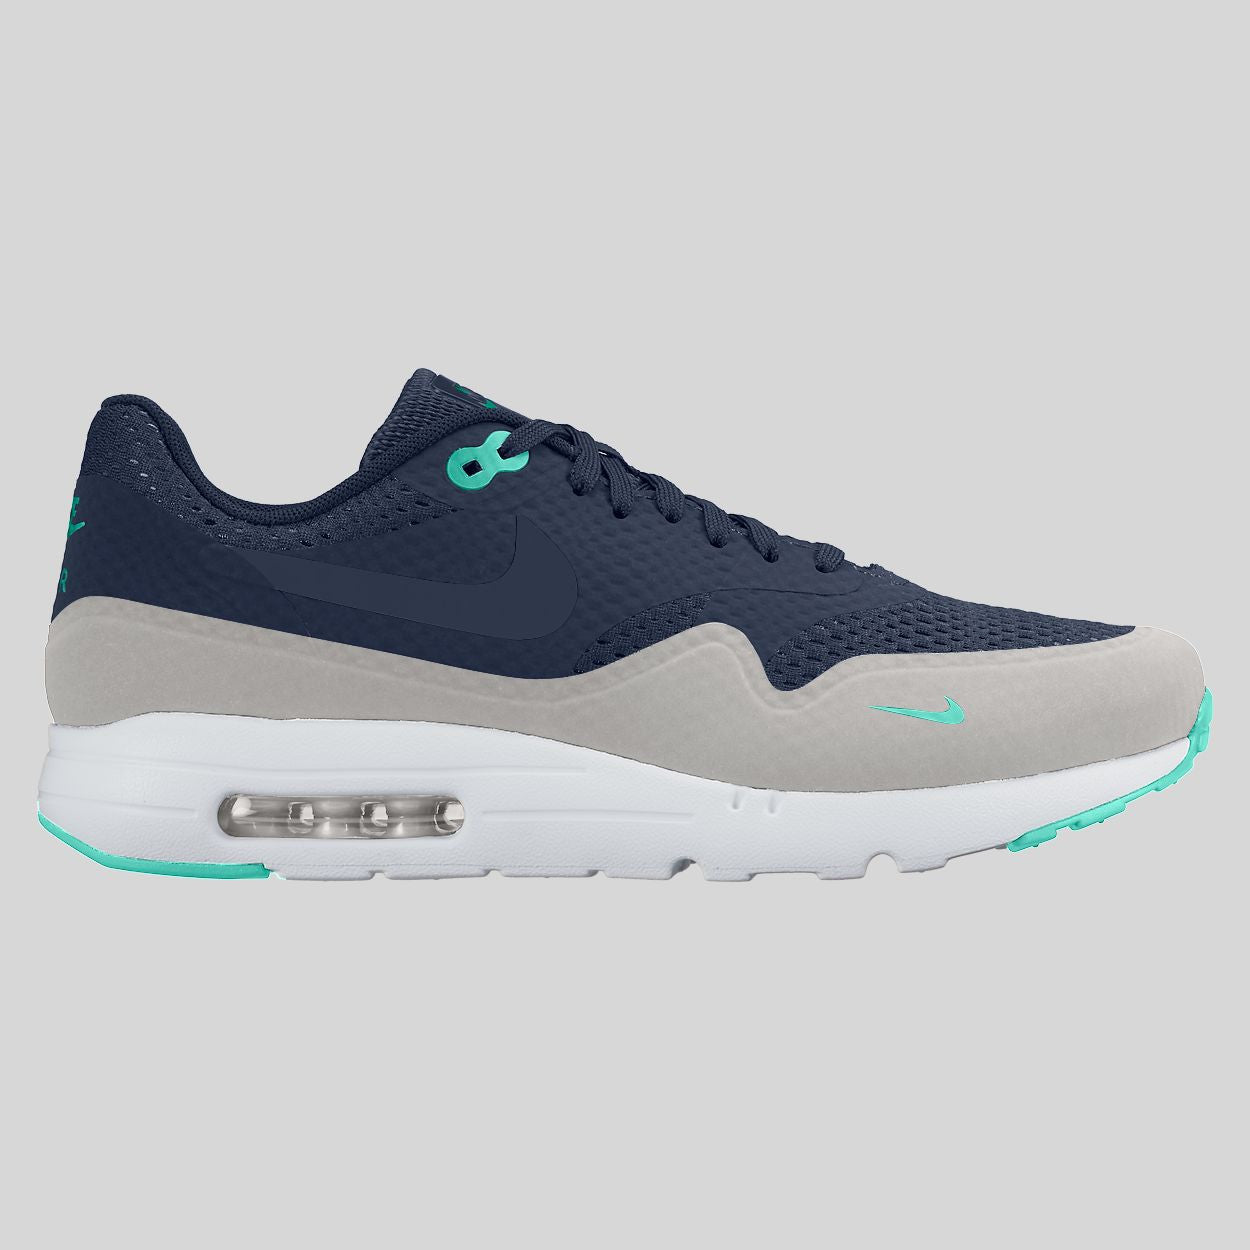 the latest e0727 0c943 Nike Air Max 1 Ultra Essential Midnight Navy Hyper Turquoise (819476-400)  ...